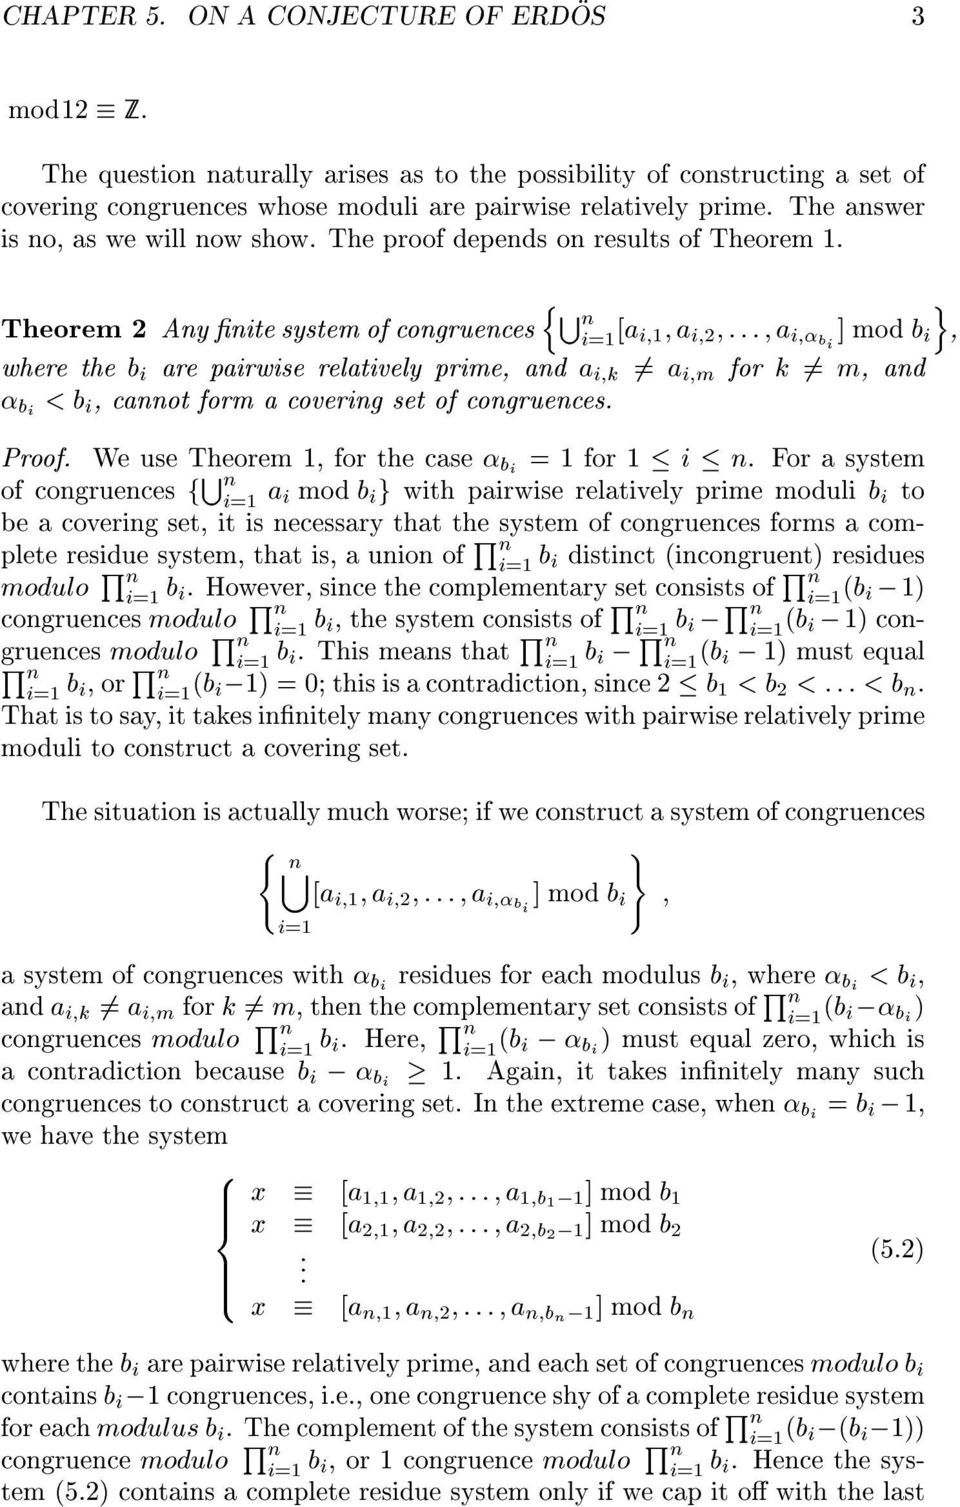 for k 6= m, ad æ bi éb i,caot form a coverig set of cogrueces Proof We use Theorem S 1, for the case æ bi =1for 1 ç i ç Forasystem of cogrueces f a i=1 i mod b i g with pairwise relatively prime